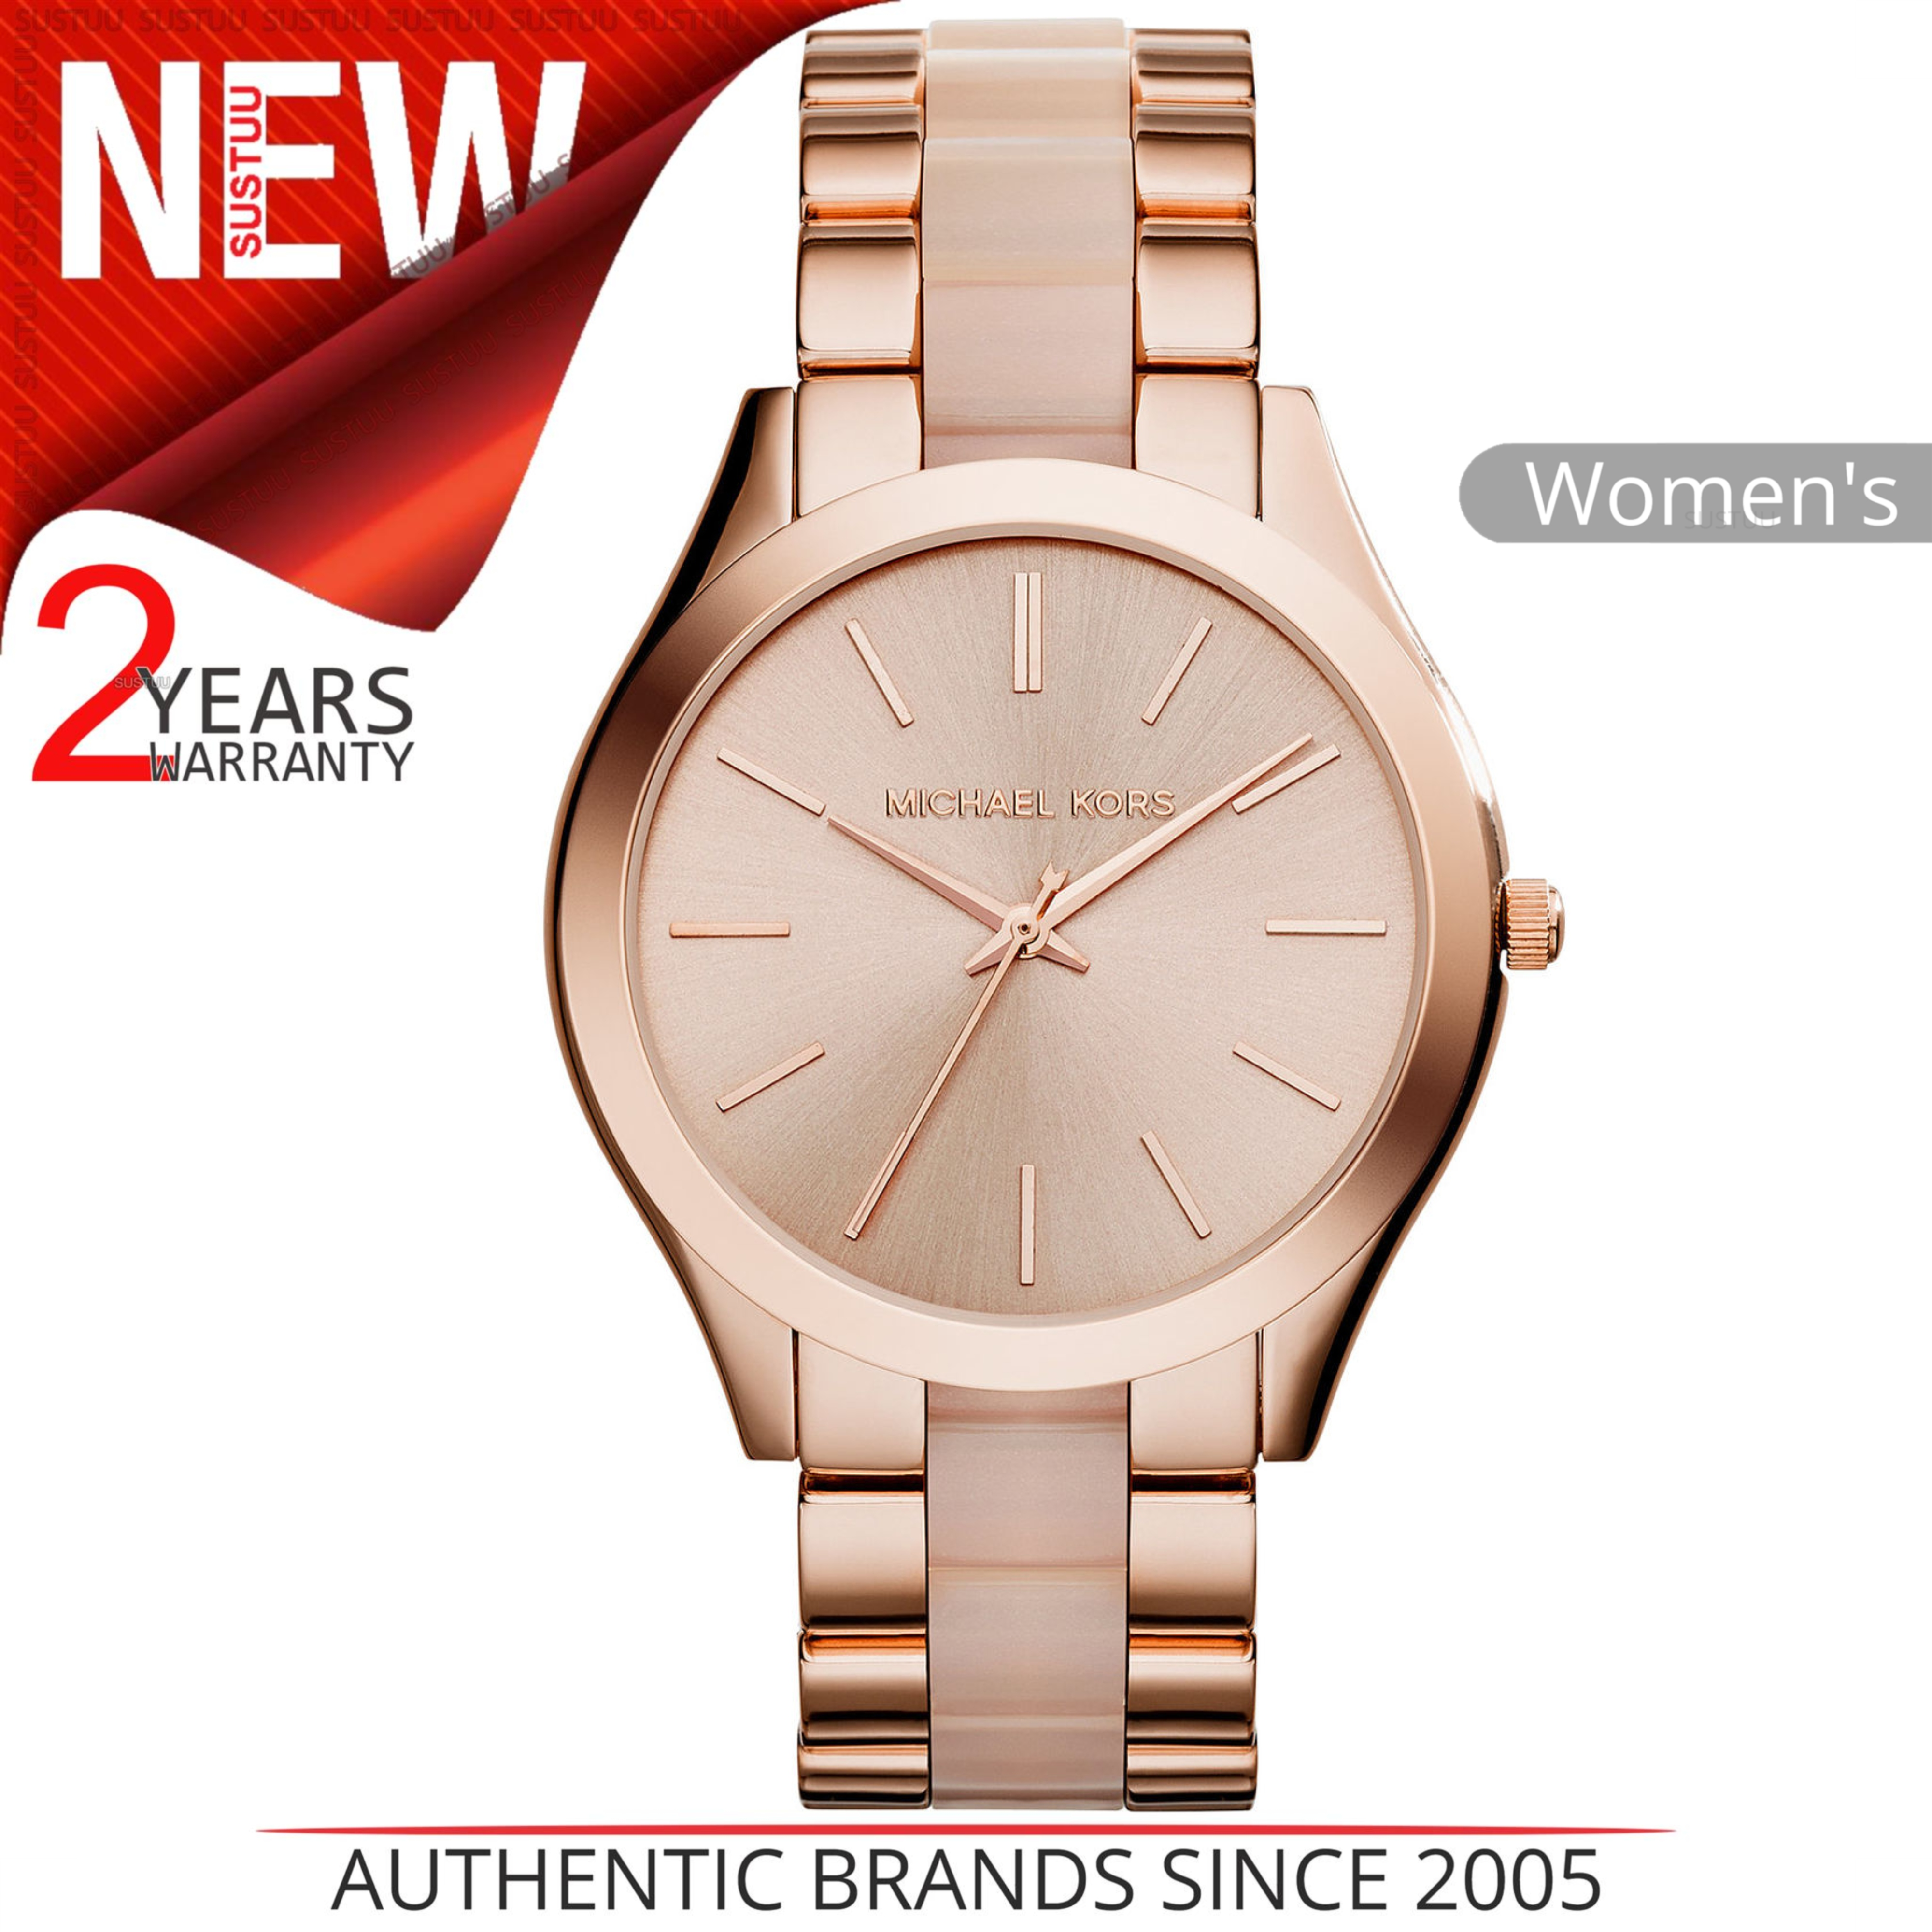 1eb05bf8583a1 Details about Michael Kors Slim Runway Ladies Watch MK4294│Rose Gold Tone│Acetate  Bracelet